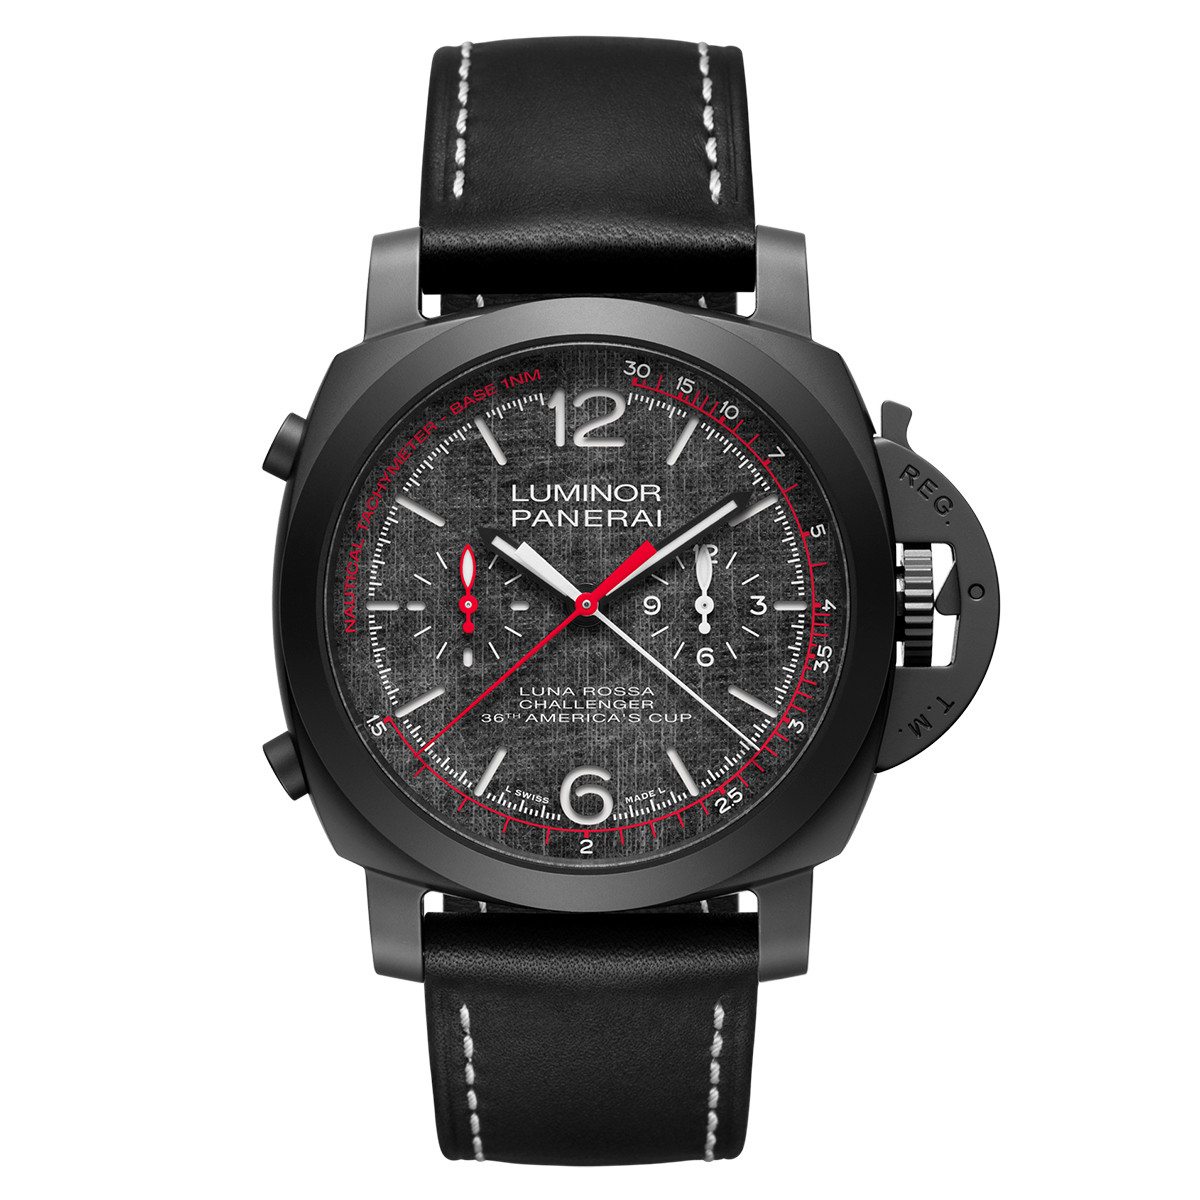 Luminor Luna Rossa Chrono 44mm Ceramic (PAM01037)